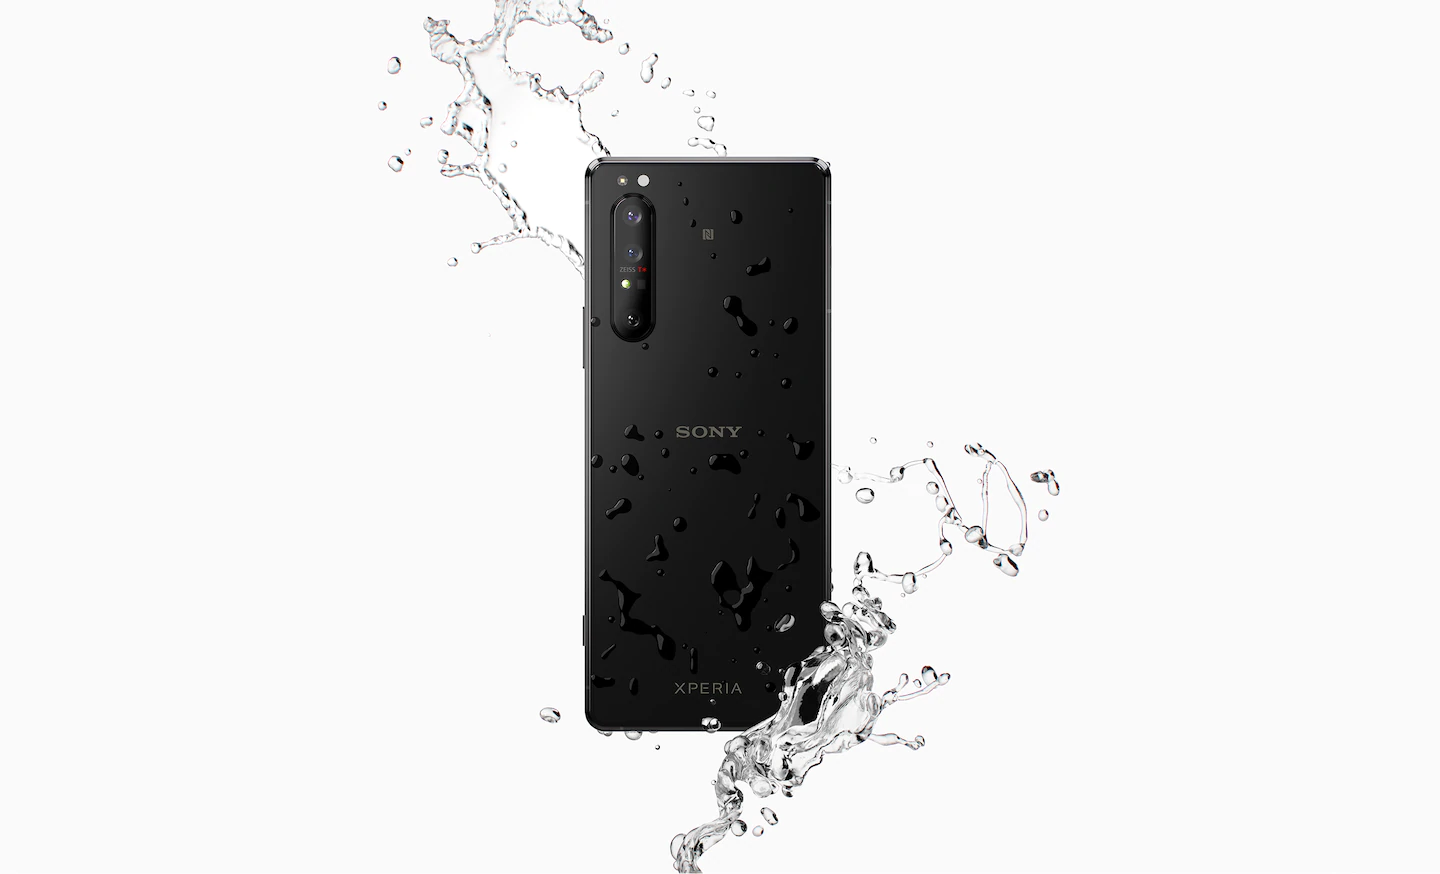 Xperia 1 II's with IP65/68 water resistance and Corning Gorilla Glass 6® on both sides